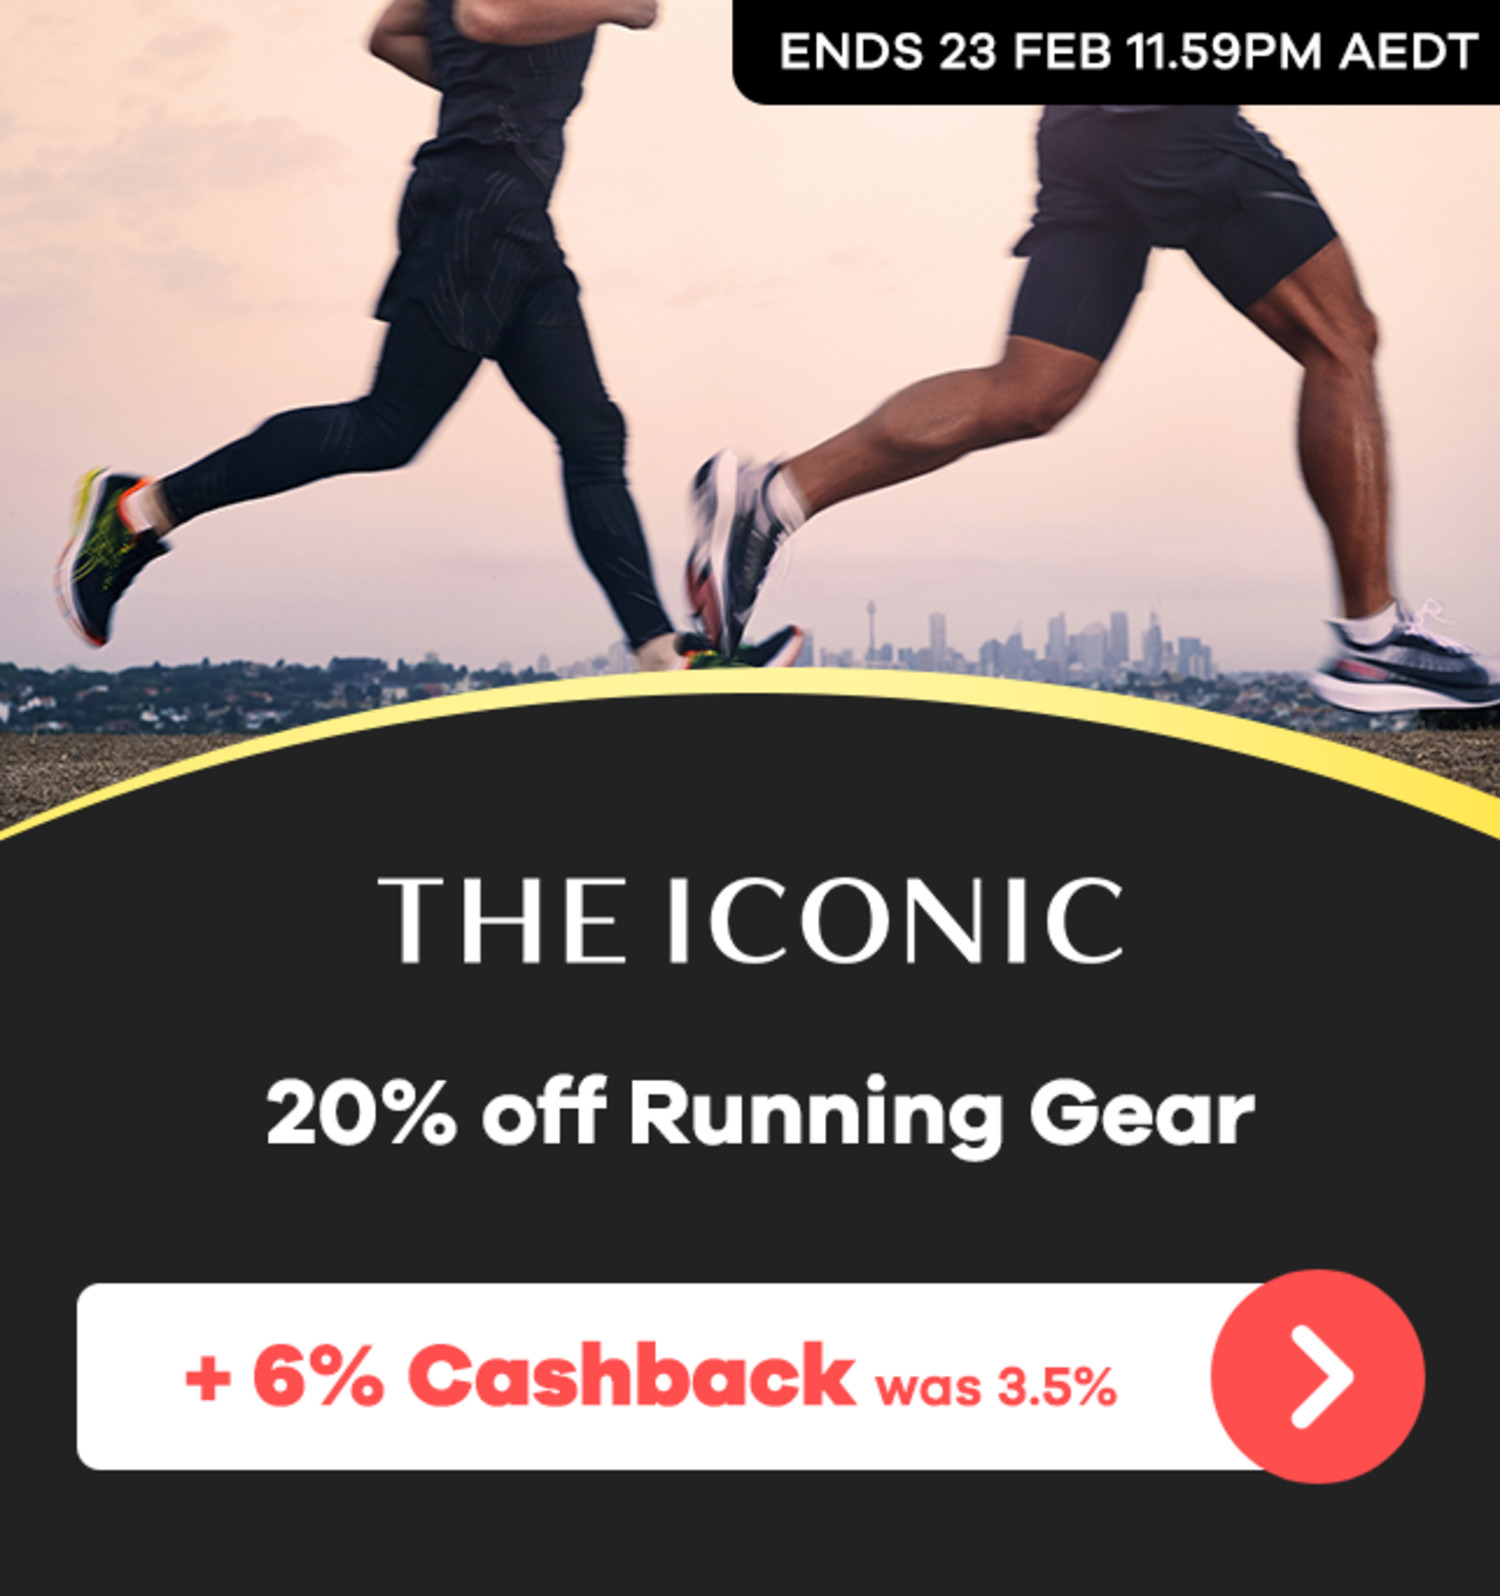 THE ICONIC - 20% off Running Gear